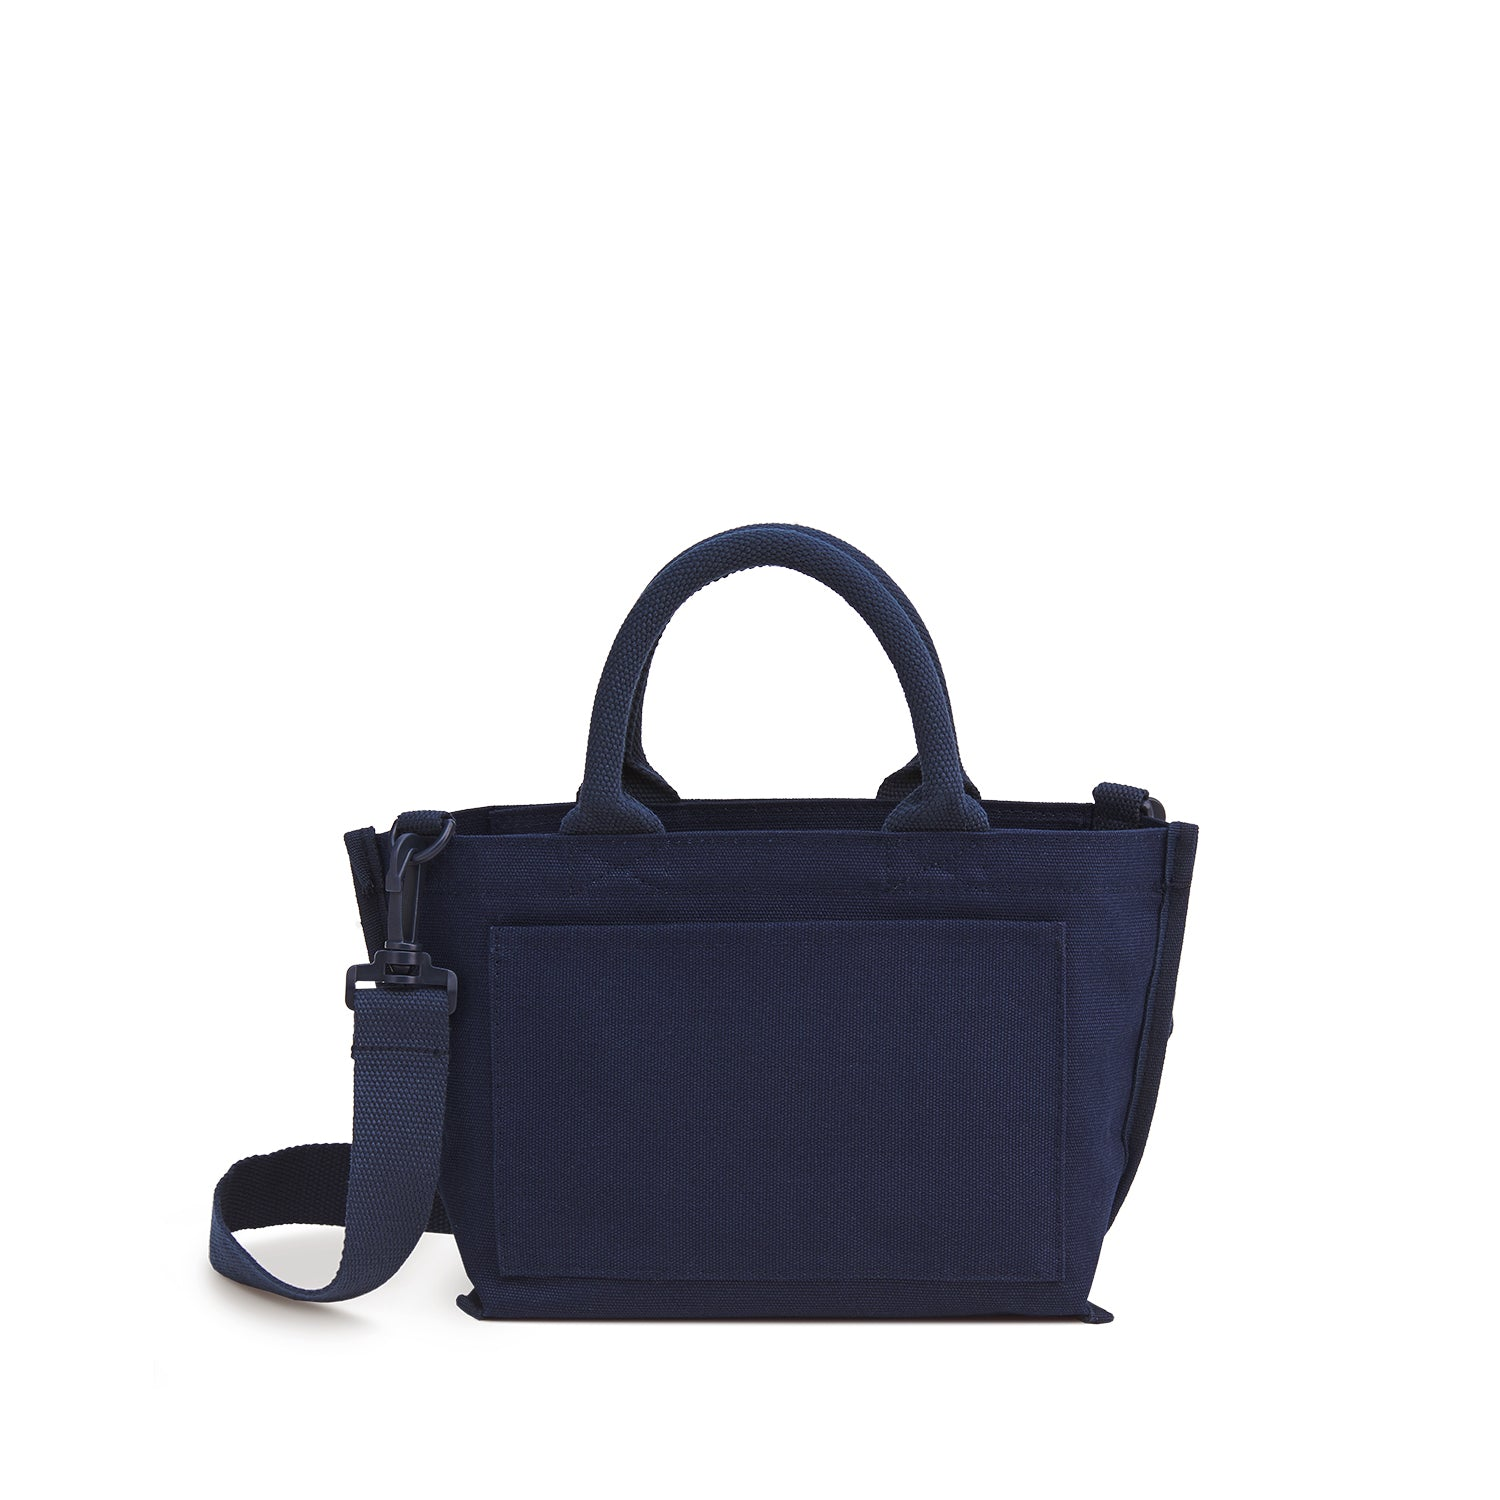 Eslona Mini - Navy